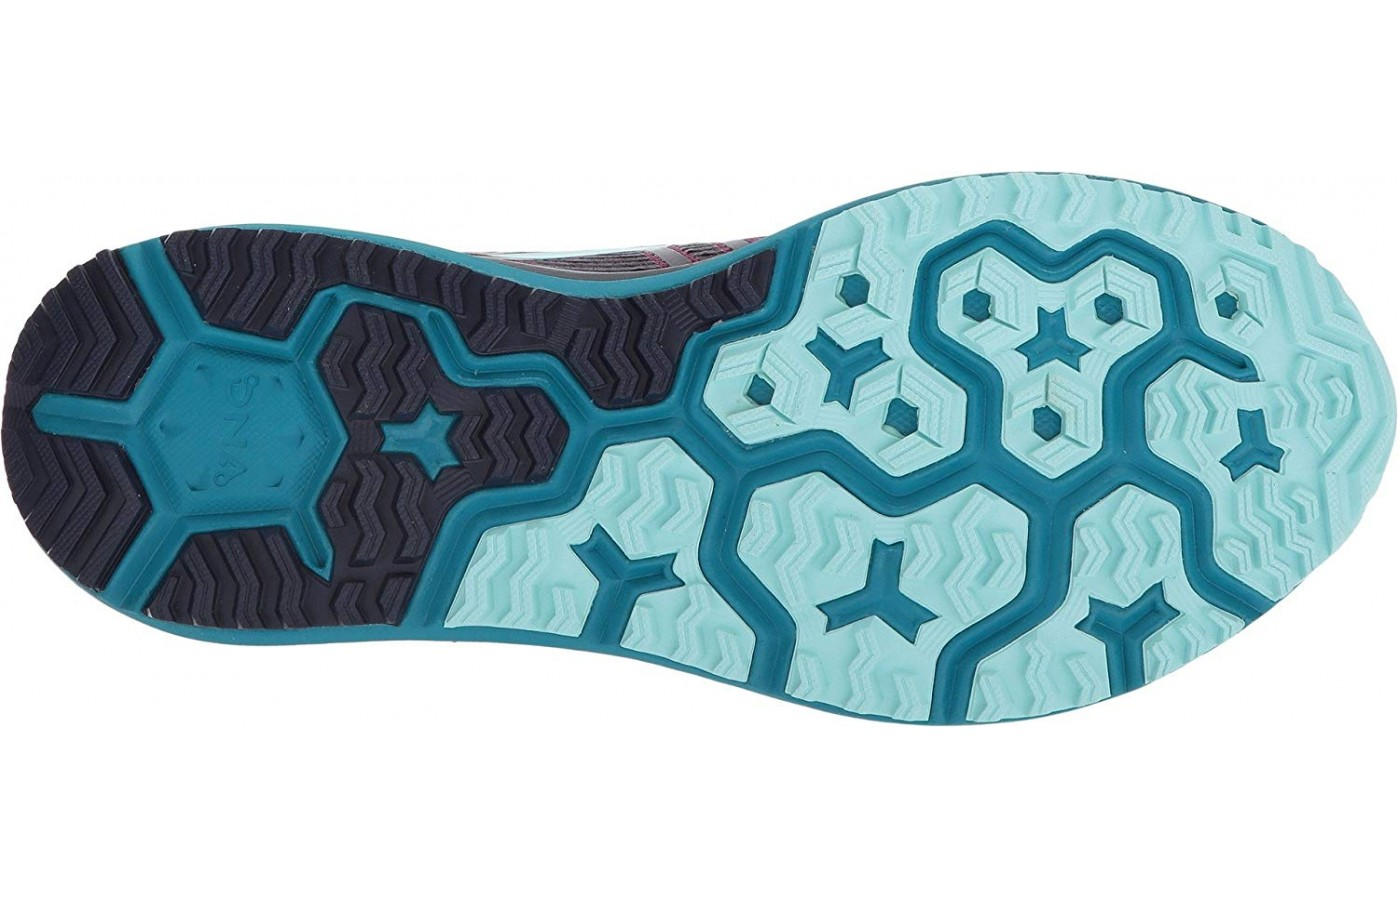 There are 3D hex-shaped gripping lugs on the outsole.